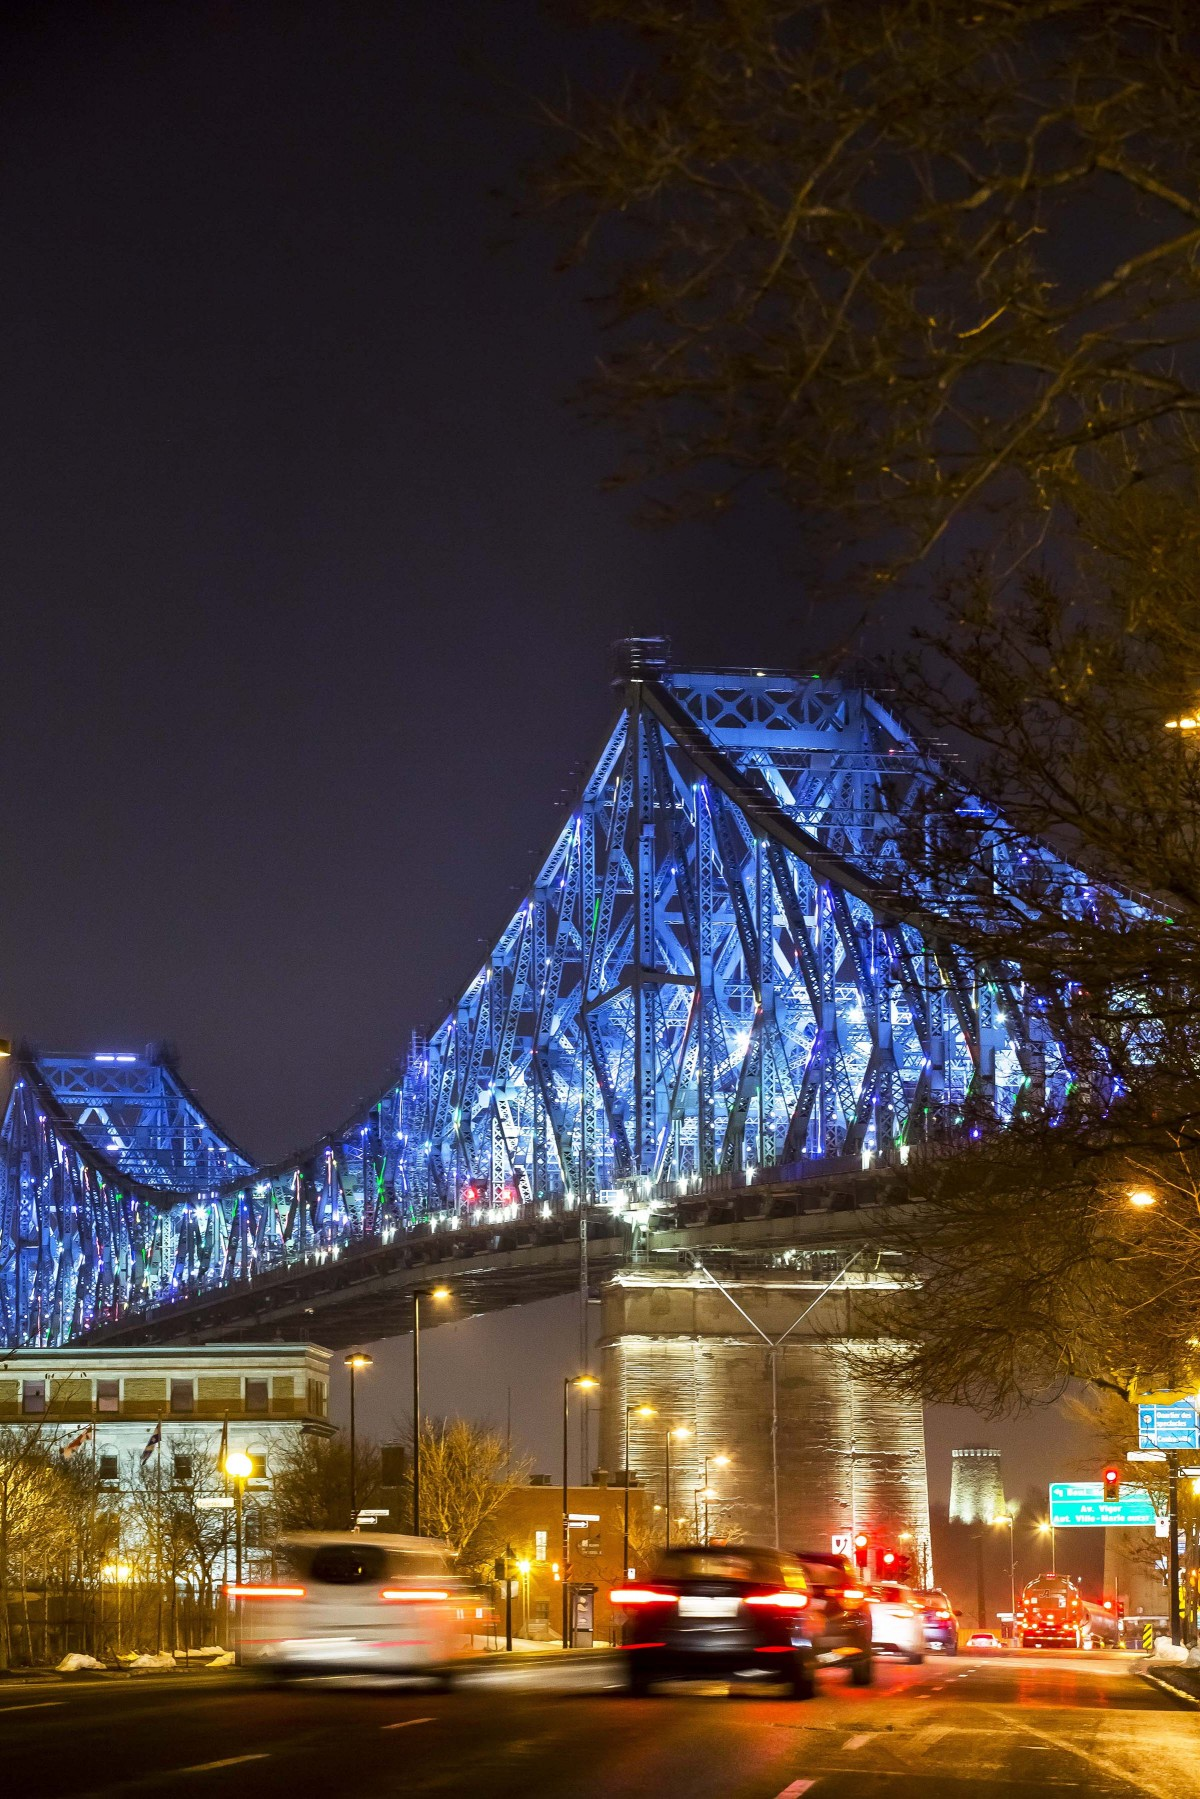 Lo más importante fue el índice de vibración 3G de los productos y la garantía de que su rendimiento soportaría sin problemas las constantes vibraciones del tránsito. – The Jacques Cartier and Champlain Bridges Incorporated